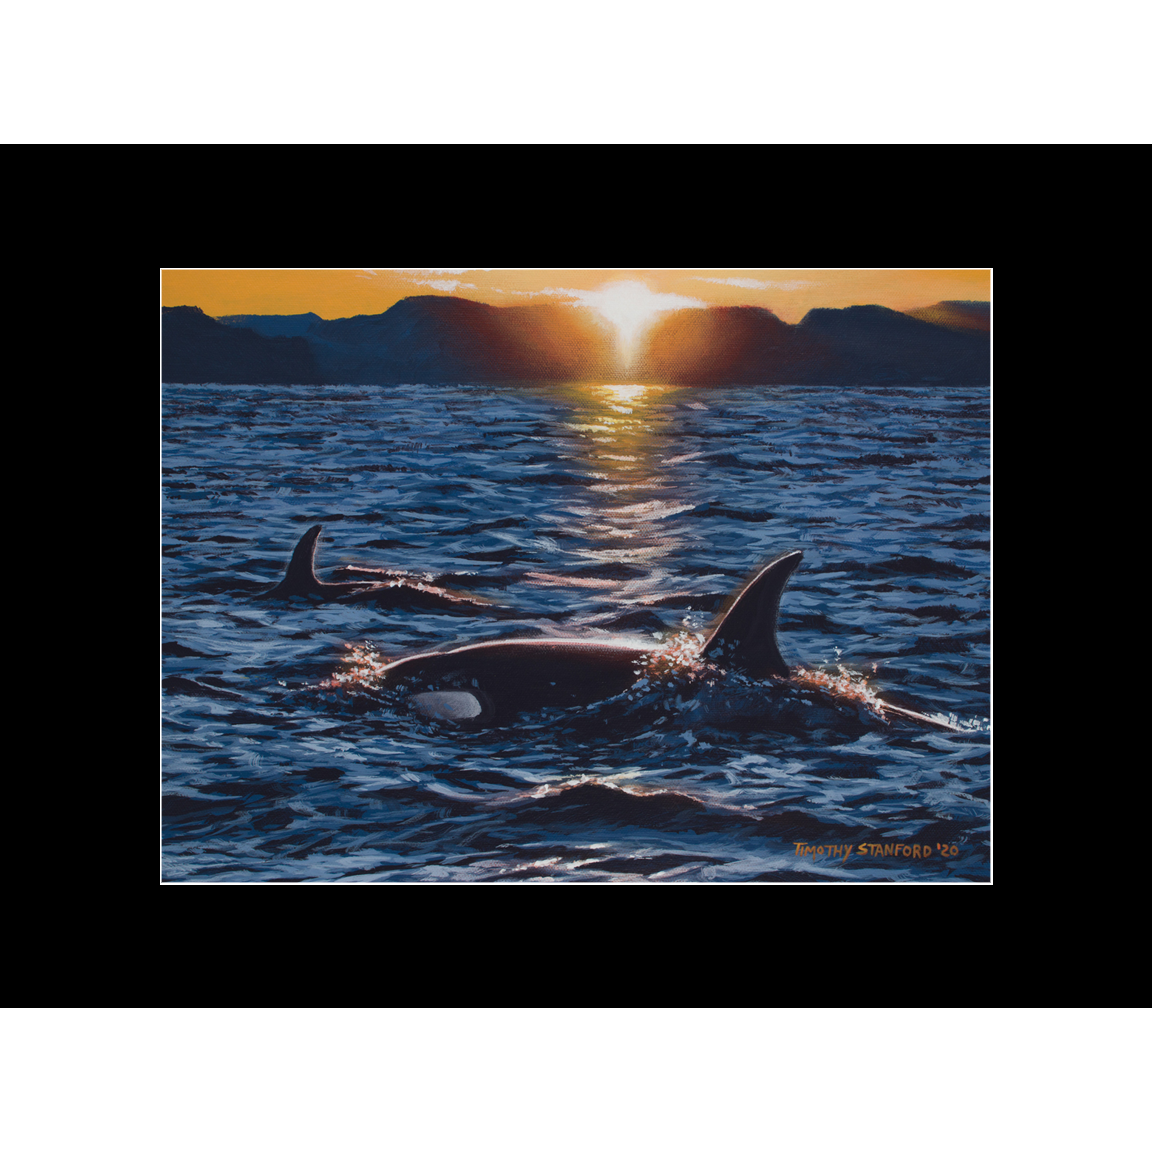 """Fine art matted print of Timothy Stanford's original acrylic painting """"Across the Sea"""""""